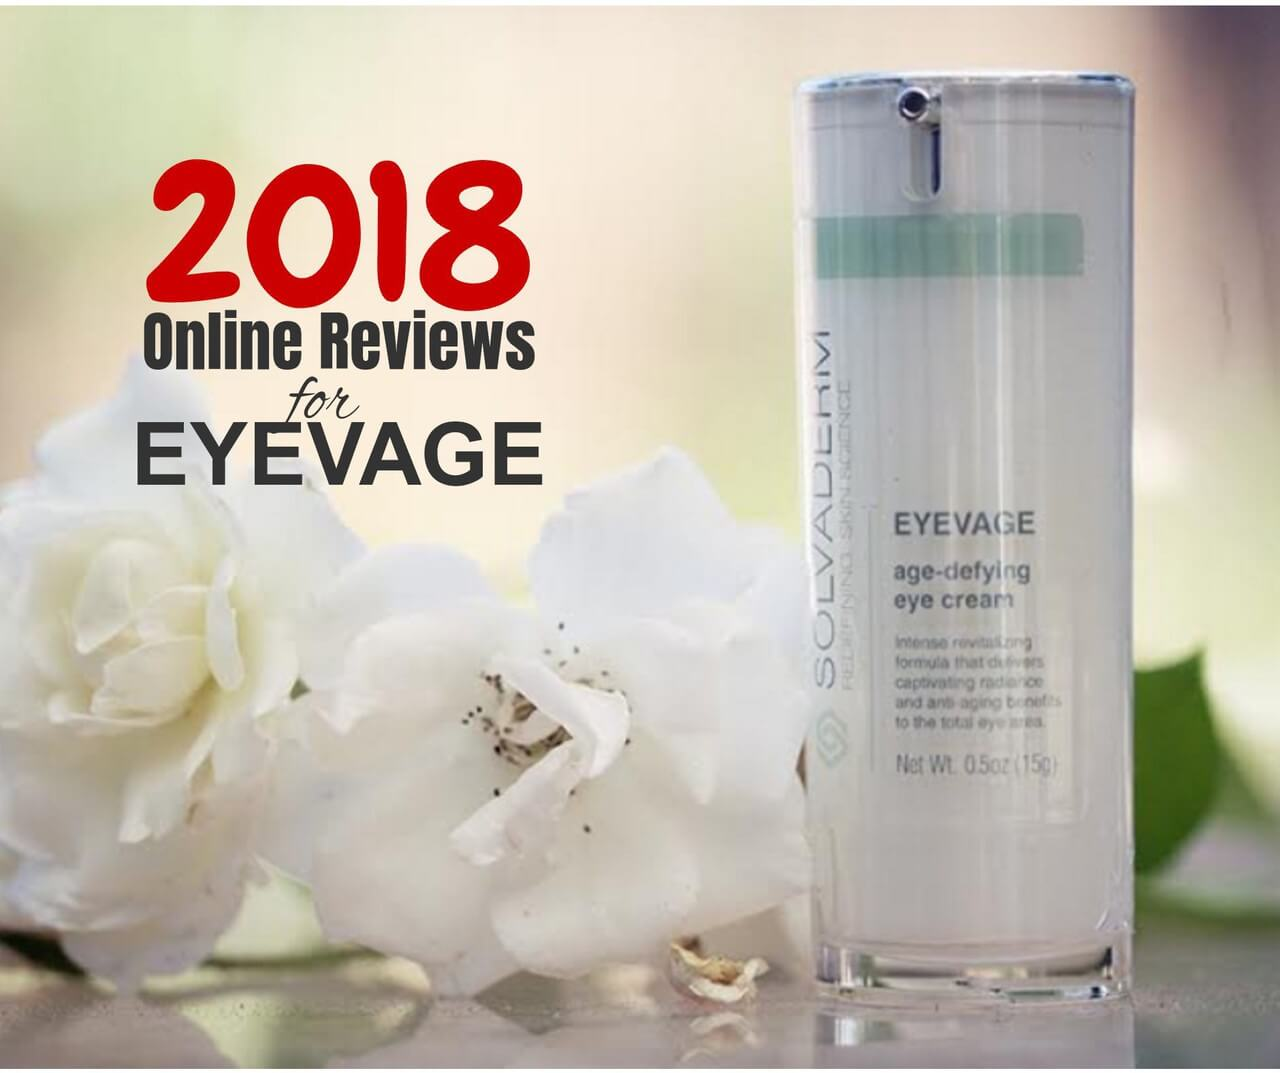 eyevage review for 2018